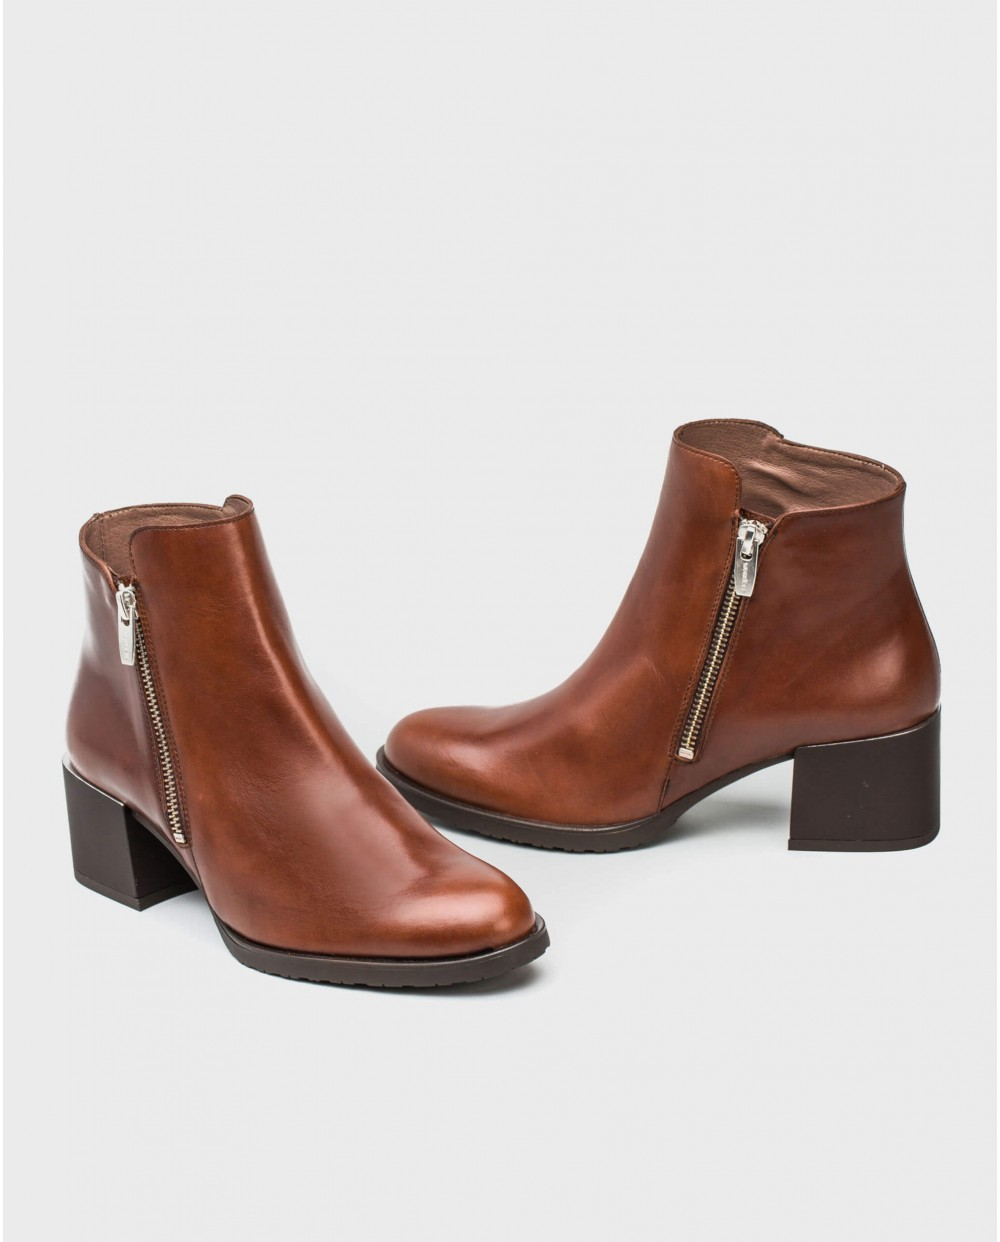 Wonders-Ankle Boots-Leather ankle boot with statement zip